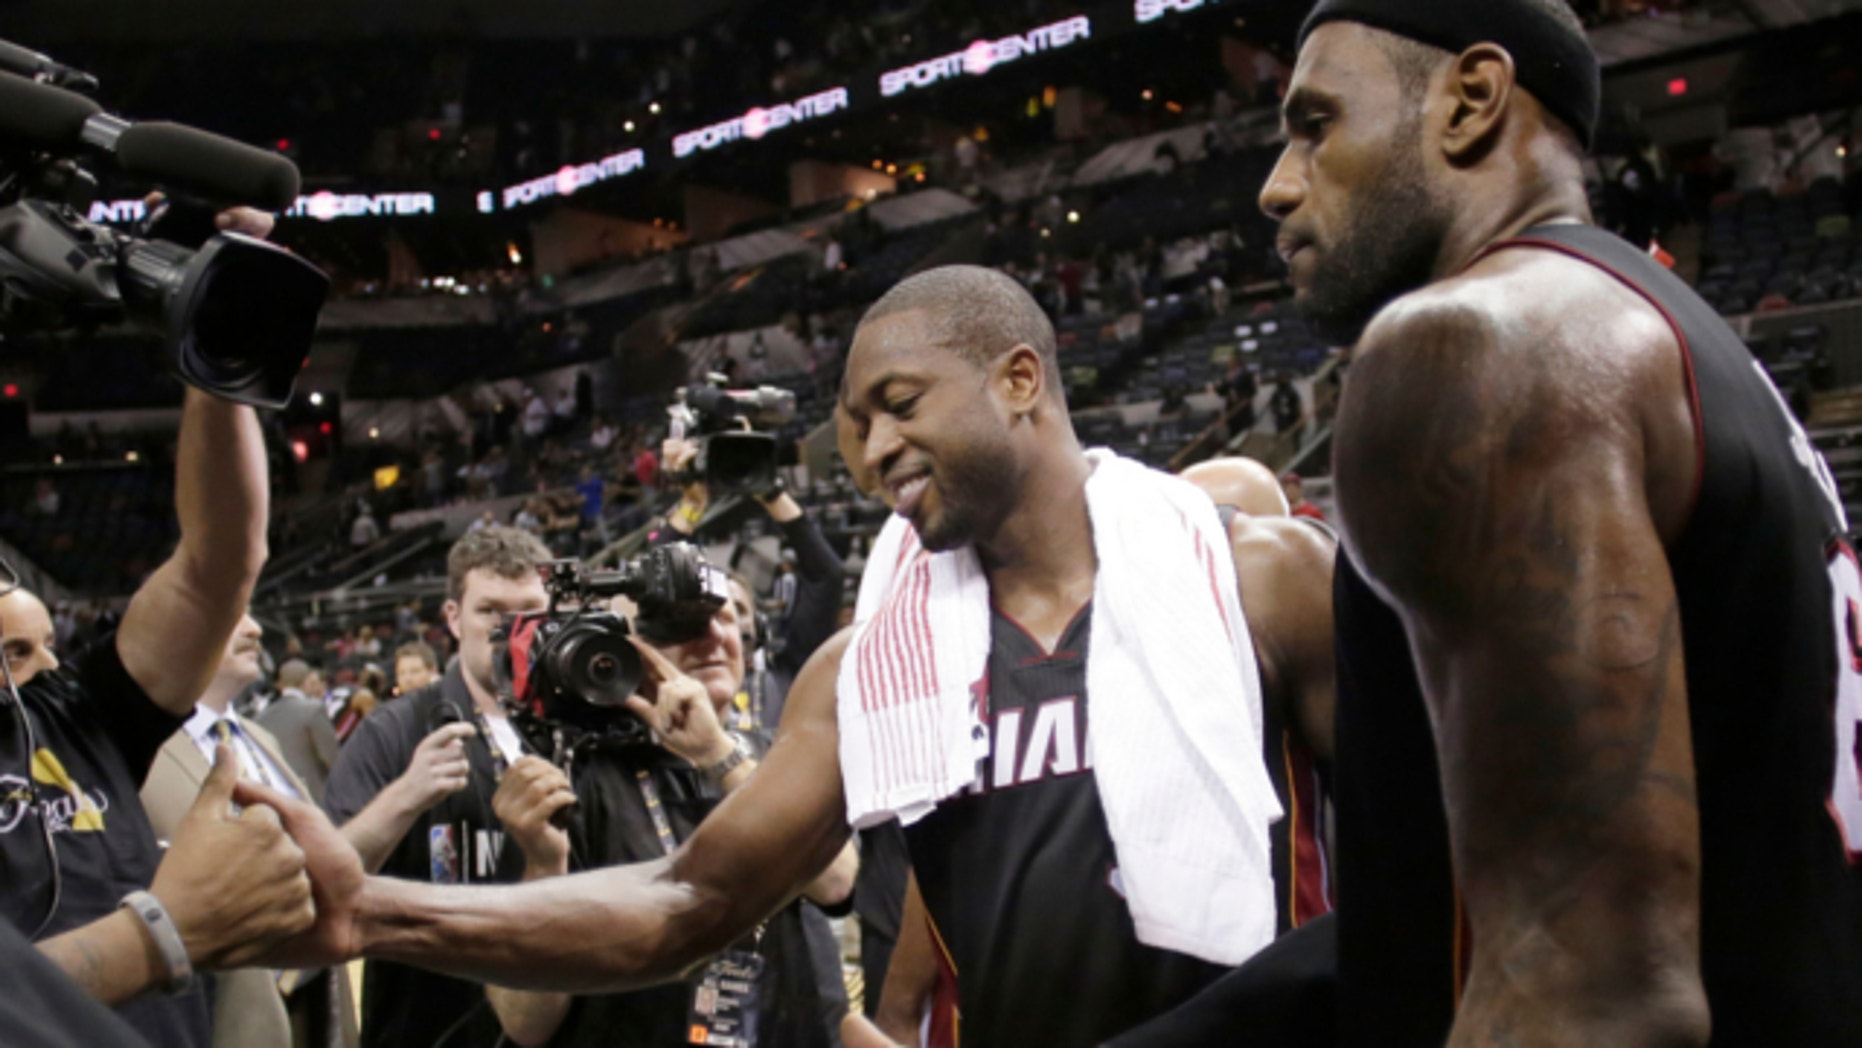 June 13, 2013: Miami Heat's Dwyane Wade, left, and LeBron James leave the floor after beating San Antonio Spurs at Game 4 of the NBA Finals basketball series in San Antonio.